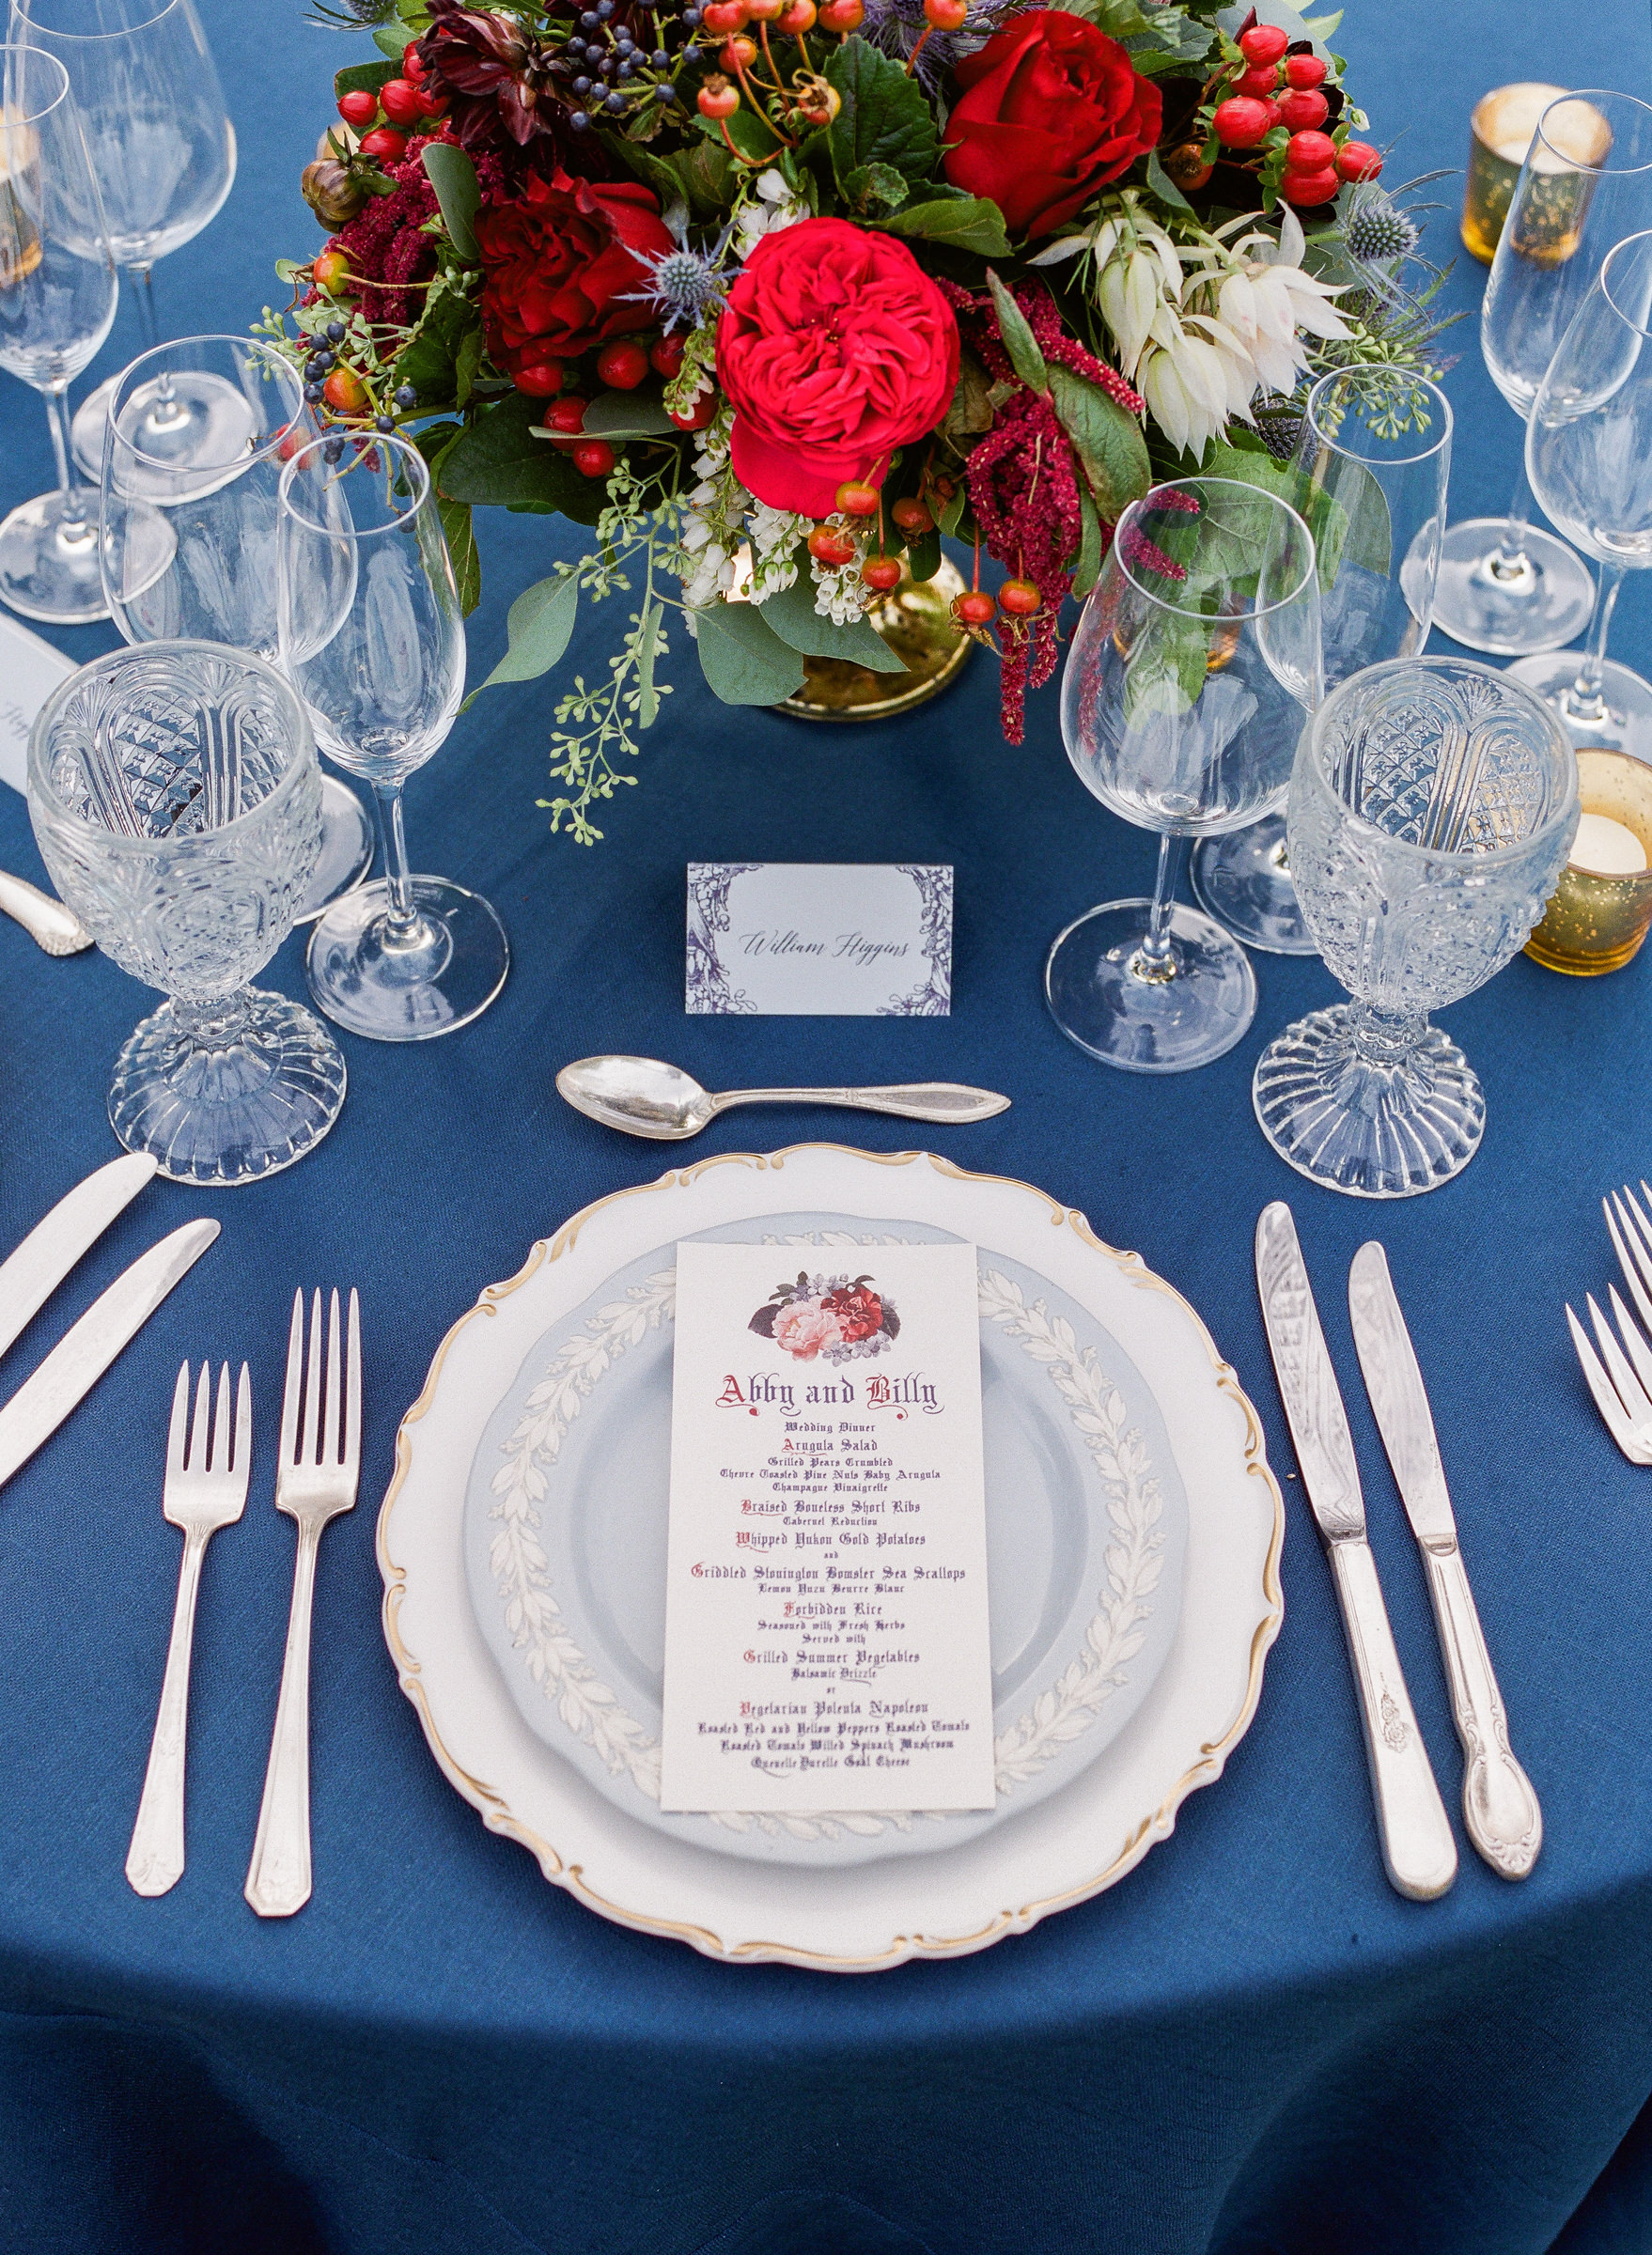 winter-wedding-place-setting-crystal-scalloped-charger-red-centerpiece-with-berries-photographed-by-corbin-gurkin-worlds-best-wedding-photos